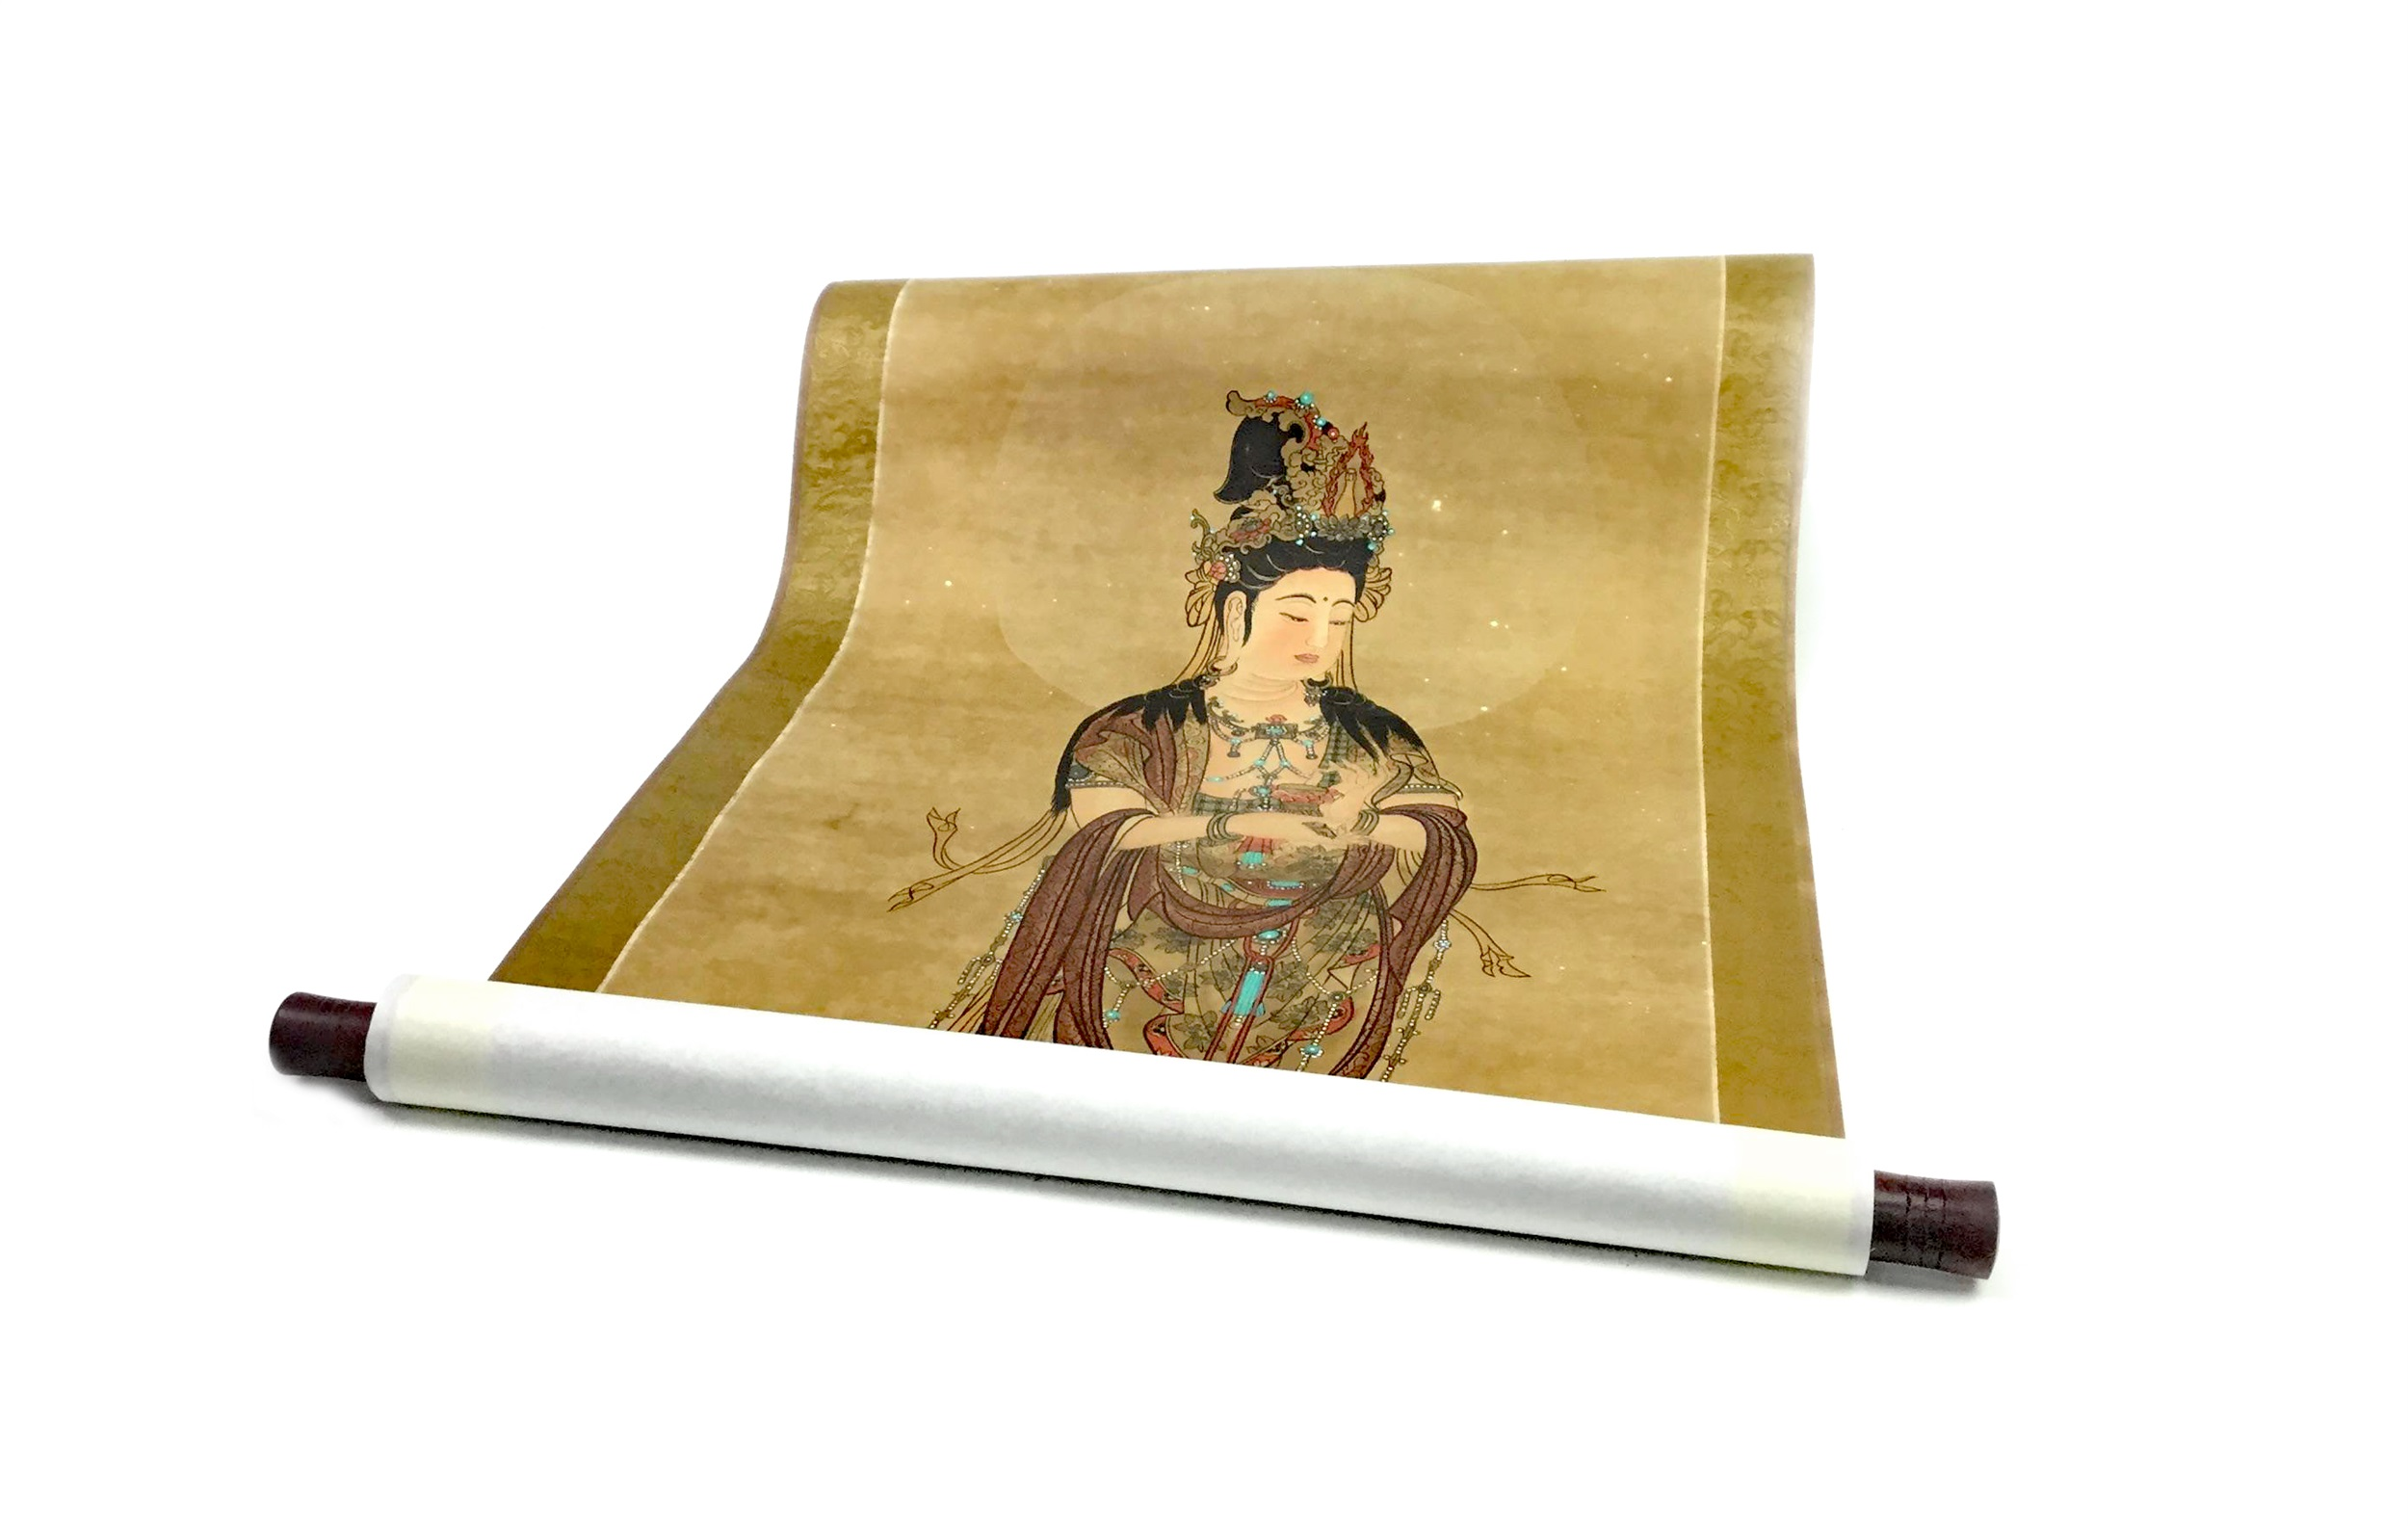 Lot 1120 - A CHINESE SCROLL PAINTING